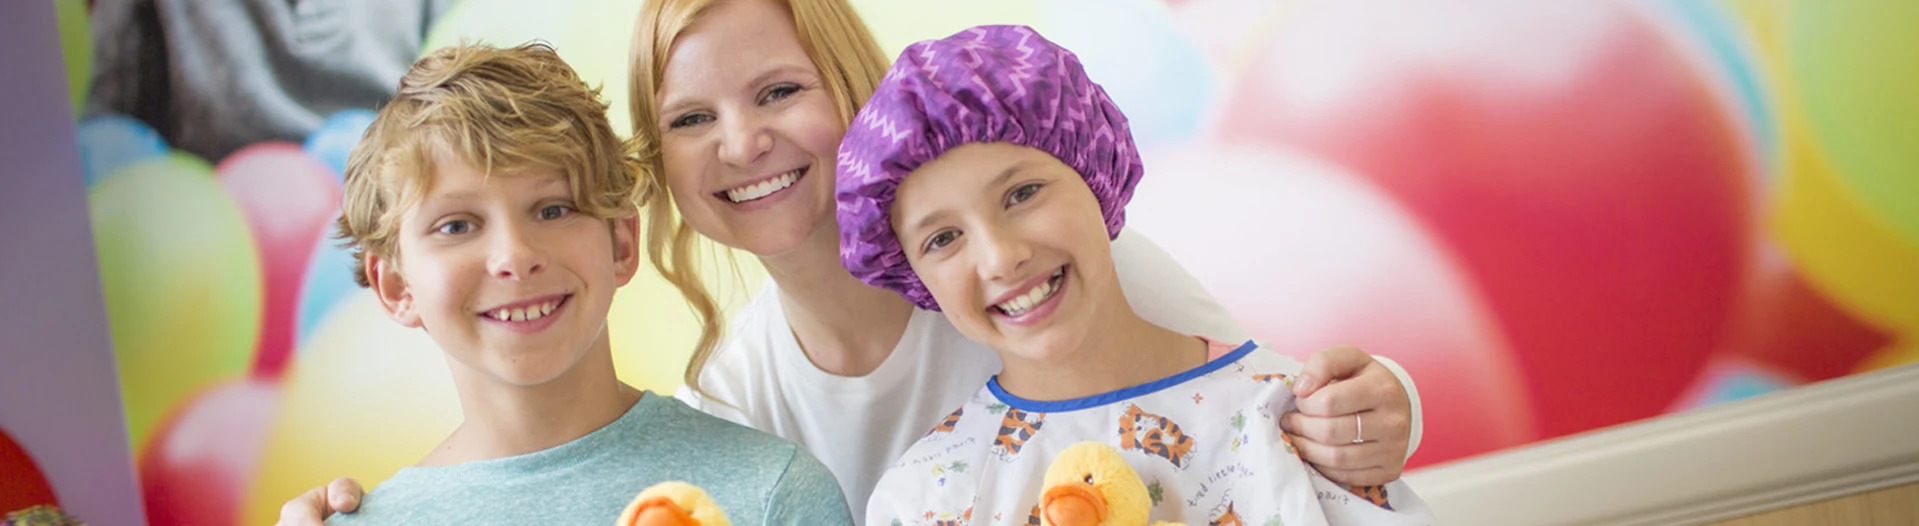 nurse with two children smiling at camera